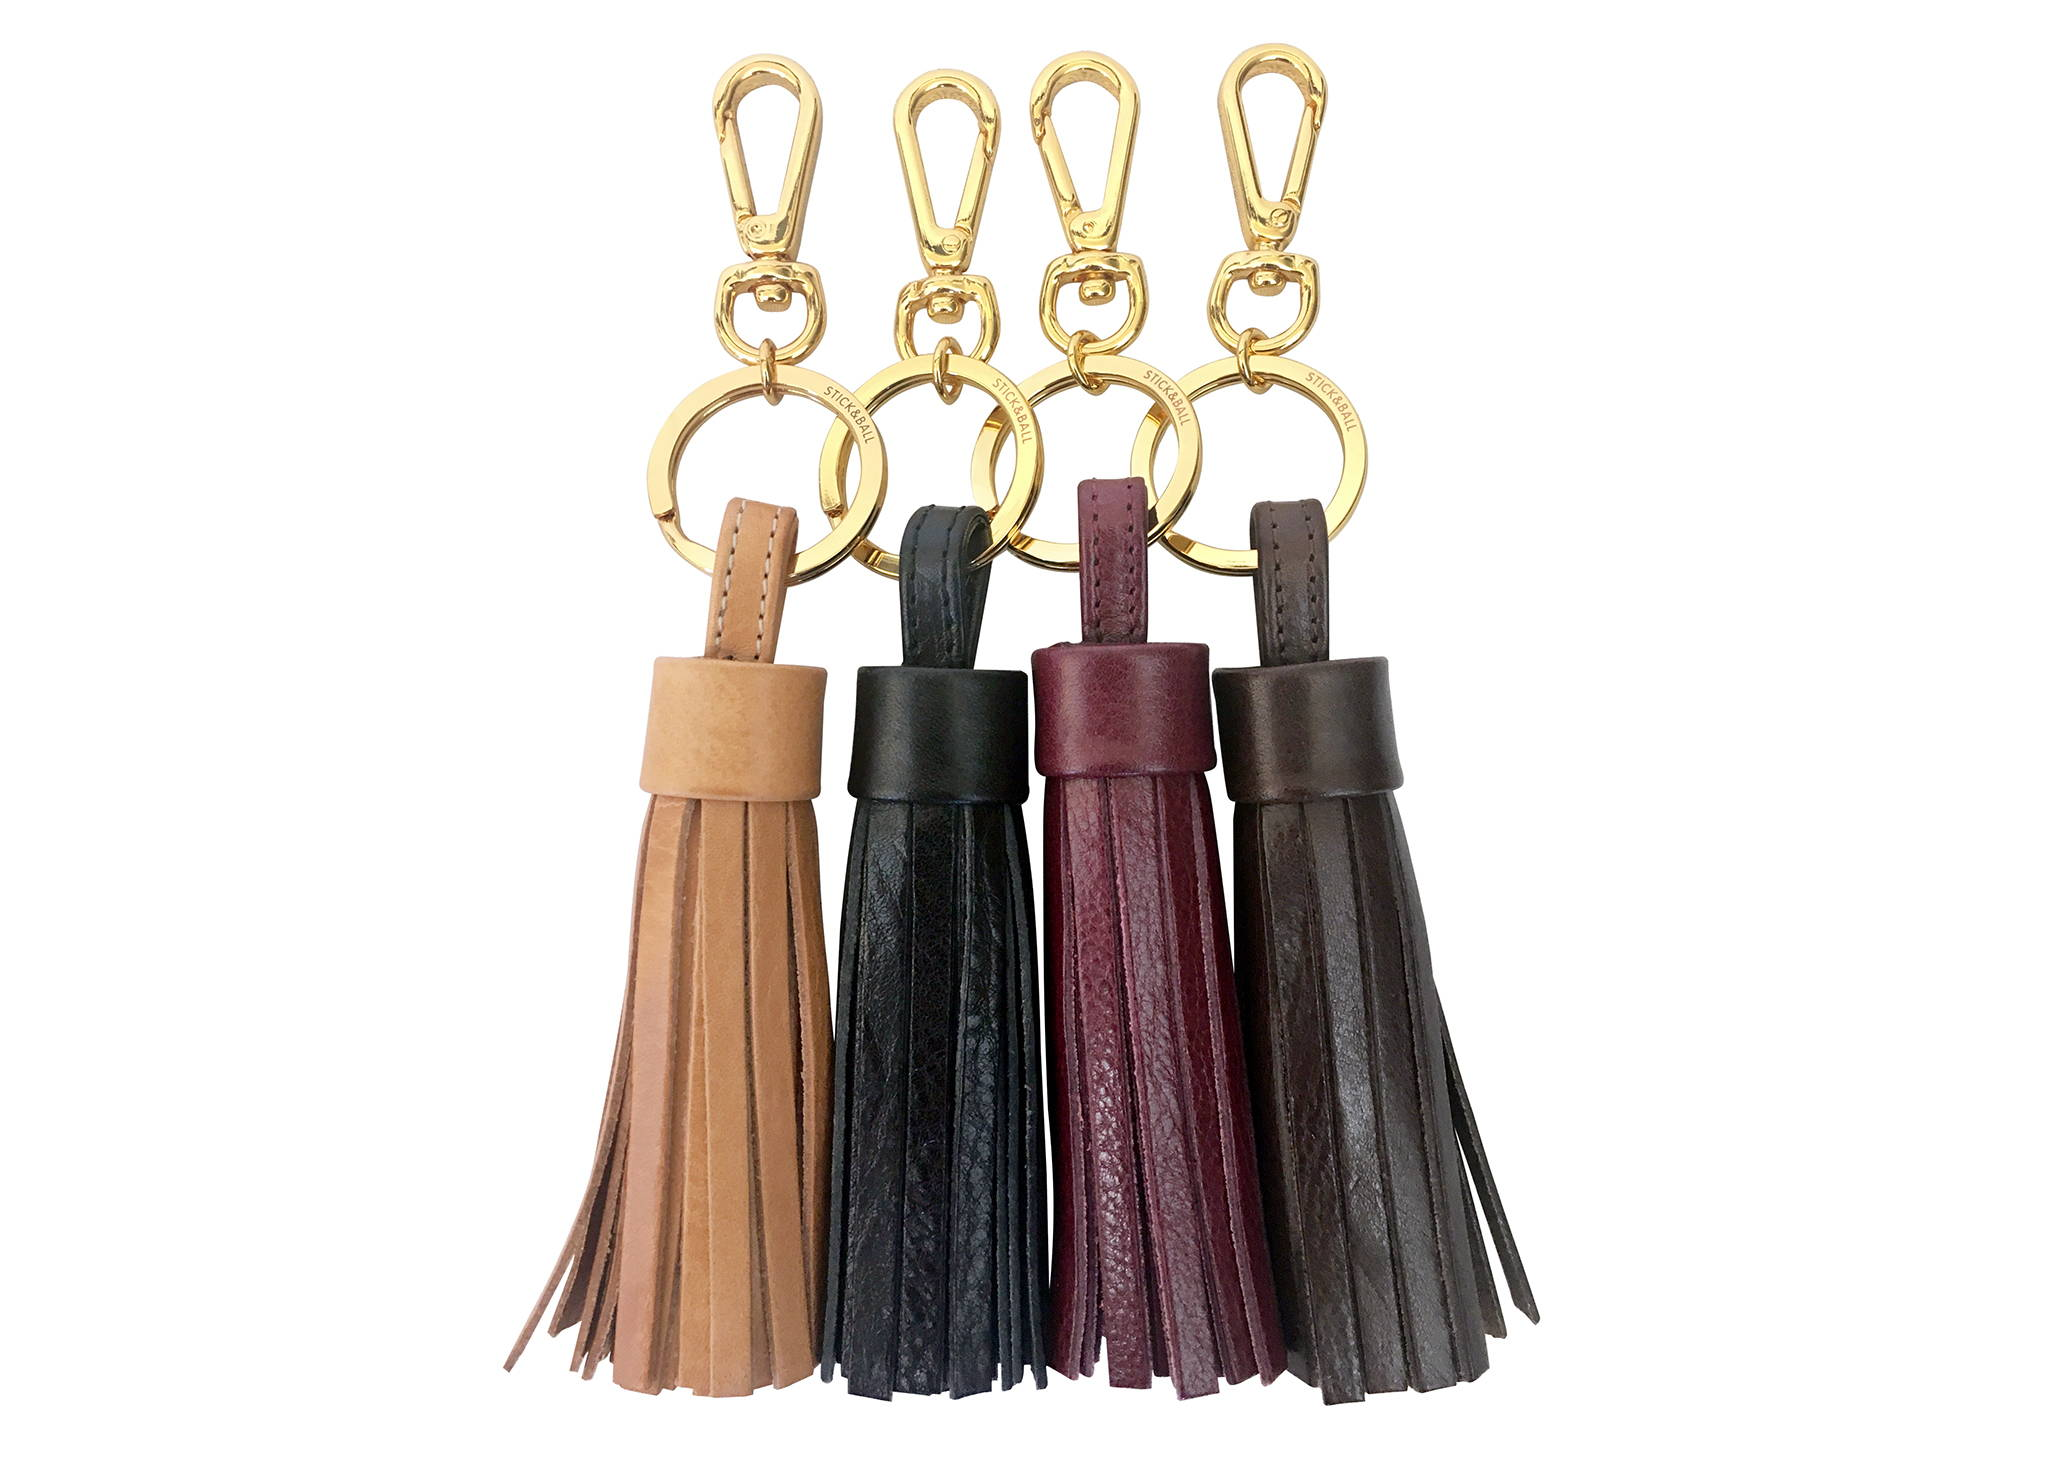 display of vegetable-tanned leather tassel keychains in tan, black, burgundy & brown - Stick & Ball